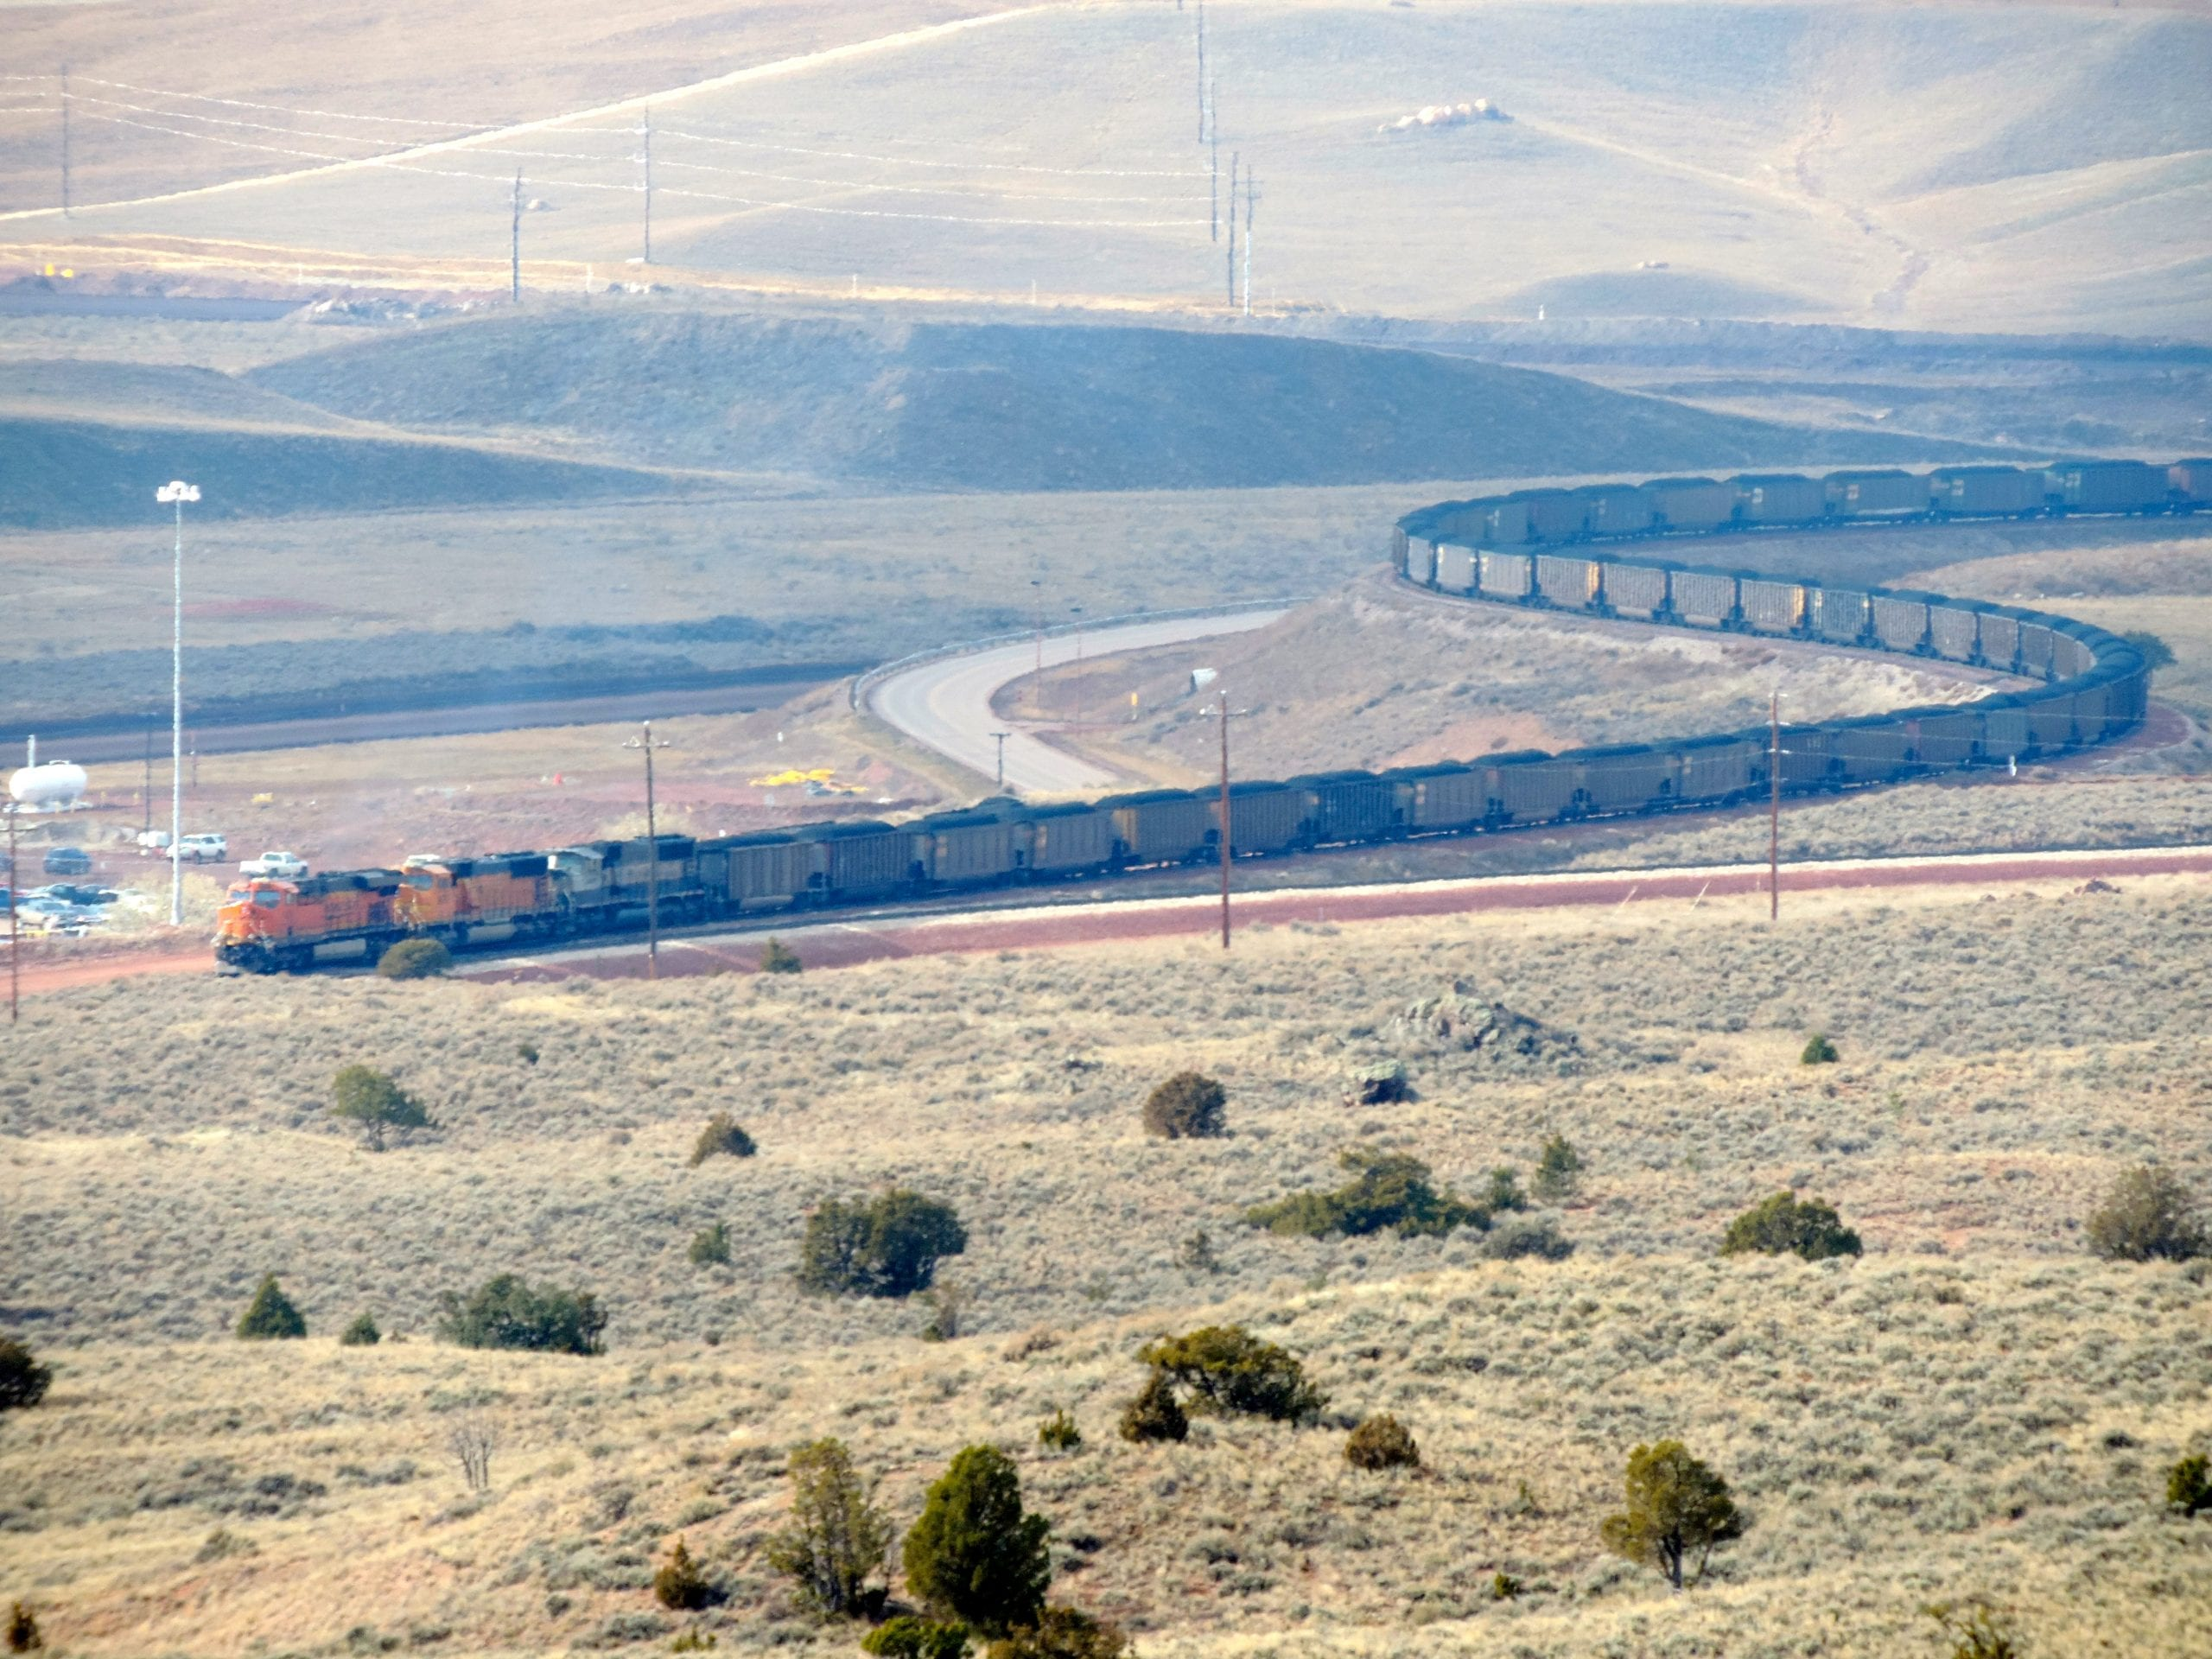 A coal train in southern Montana. Photo by WildEarth Guardians, via Flickr creative commons.